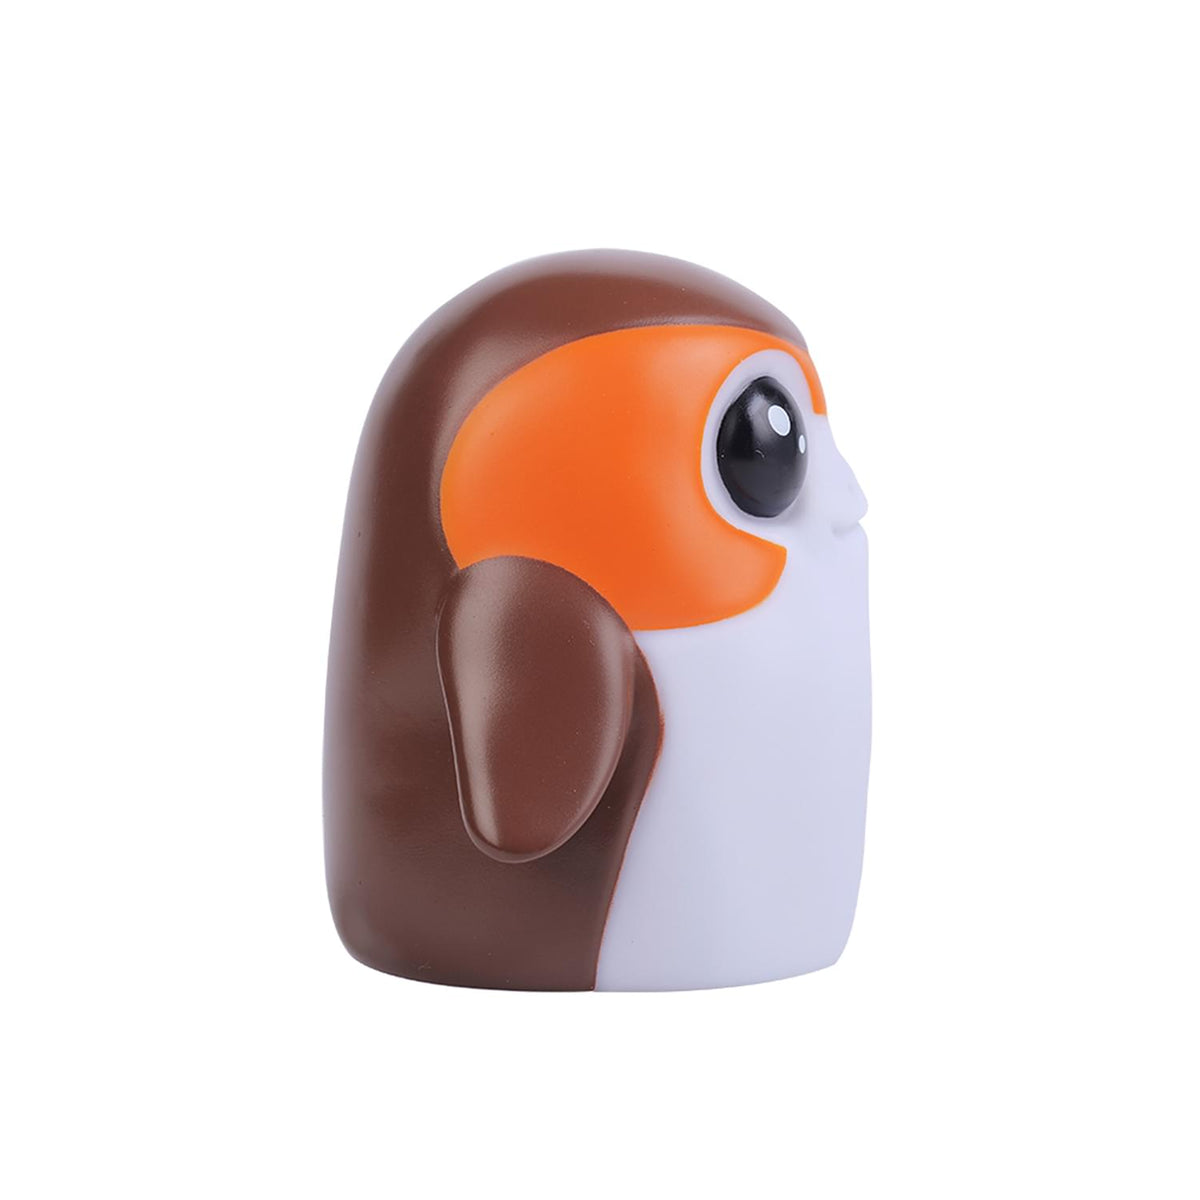 Star Wars Porg LED Mood Light Figure | Mood Lighting Star Wars Figure | 6 Inches